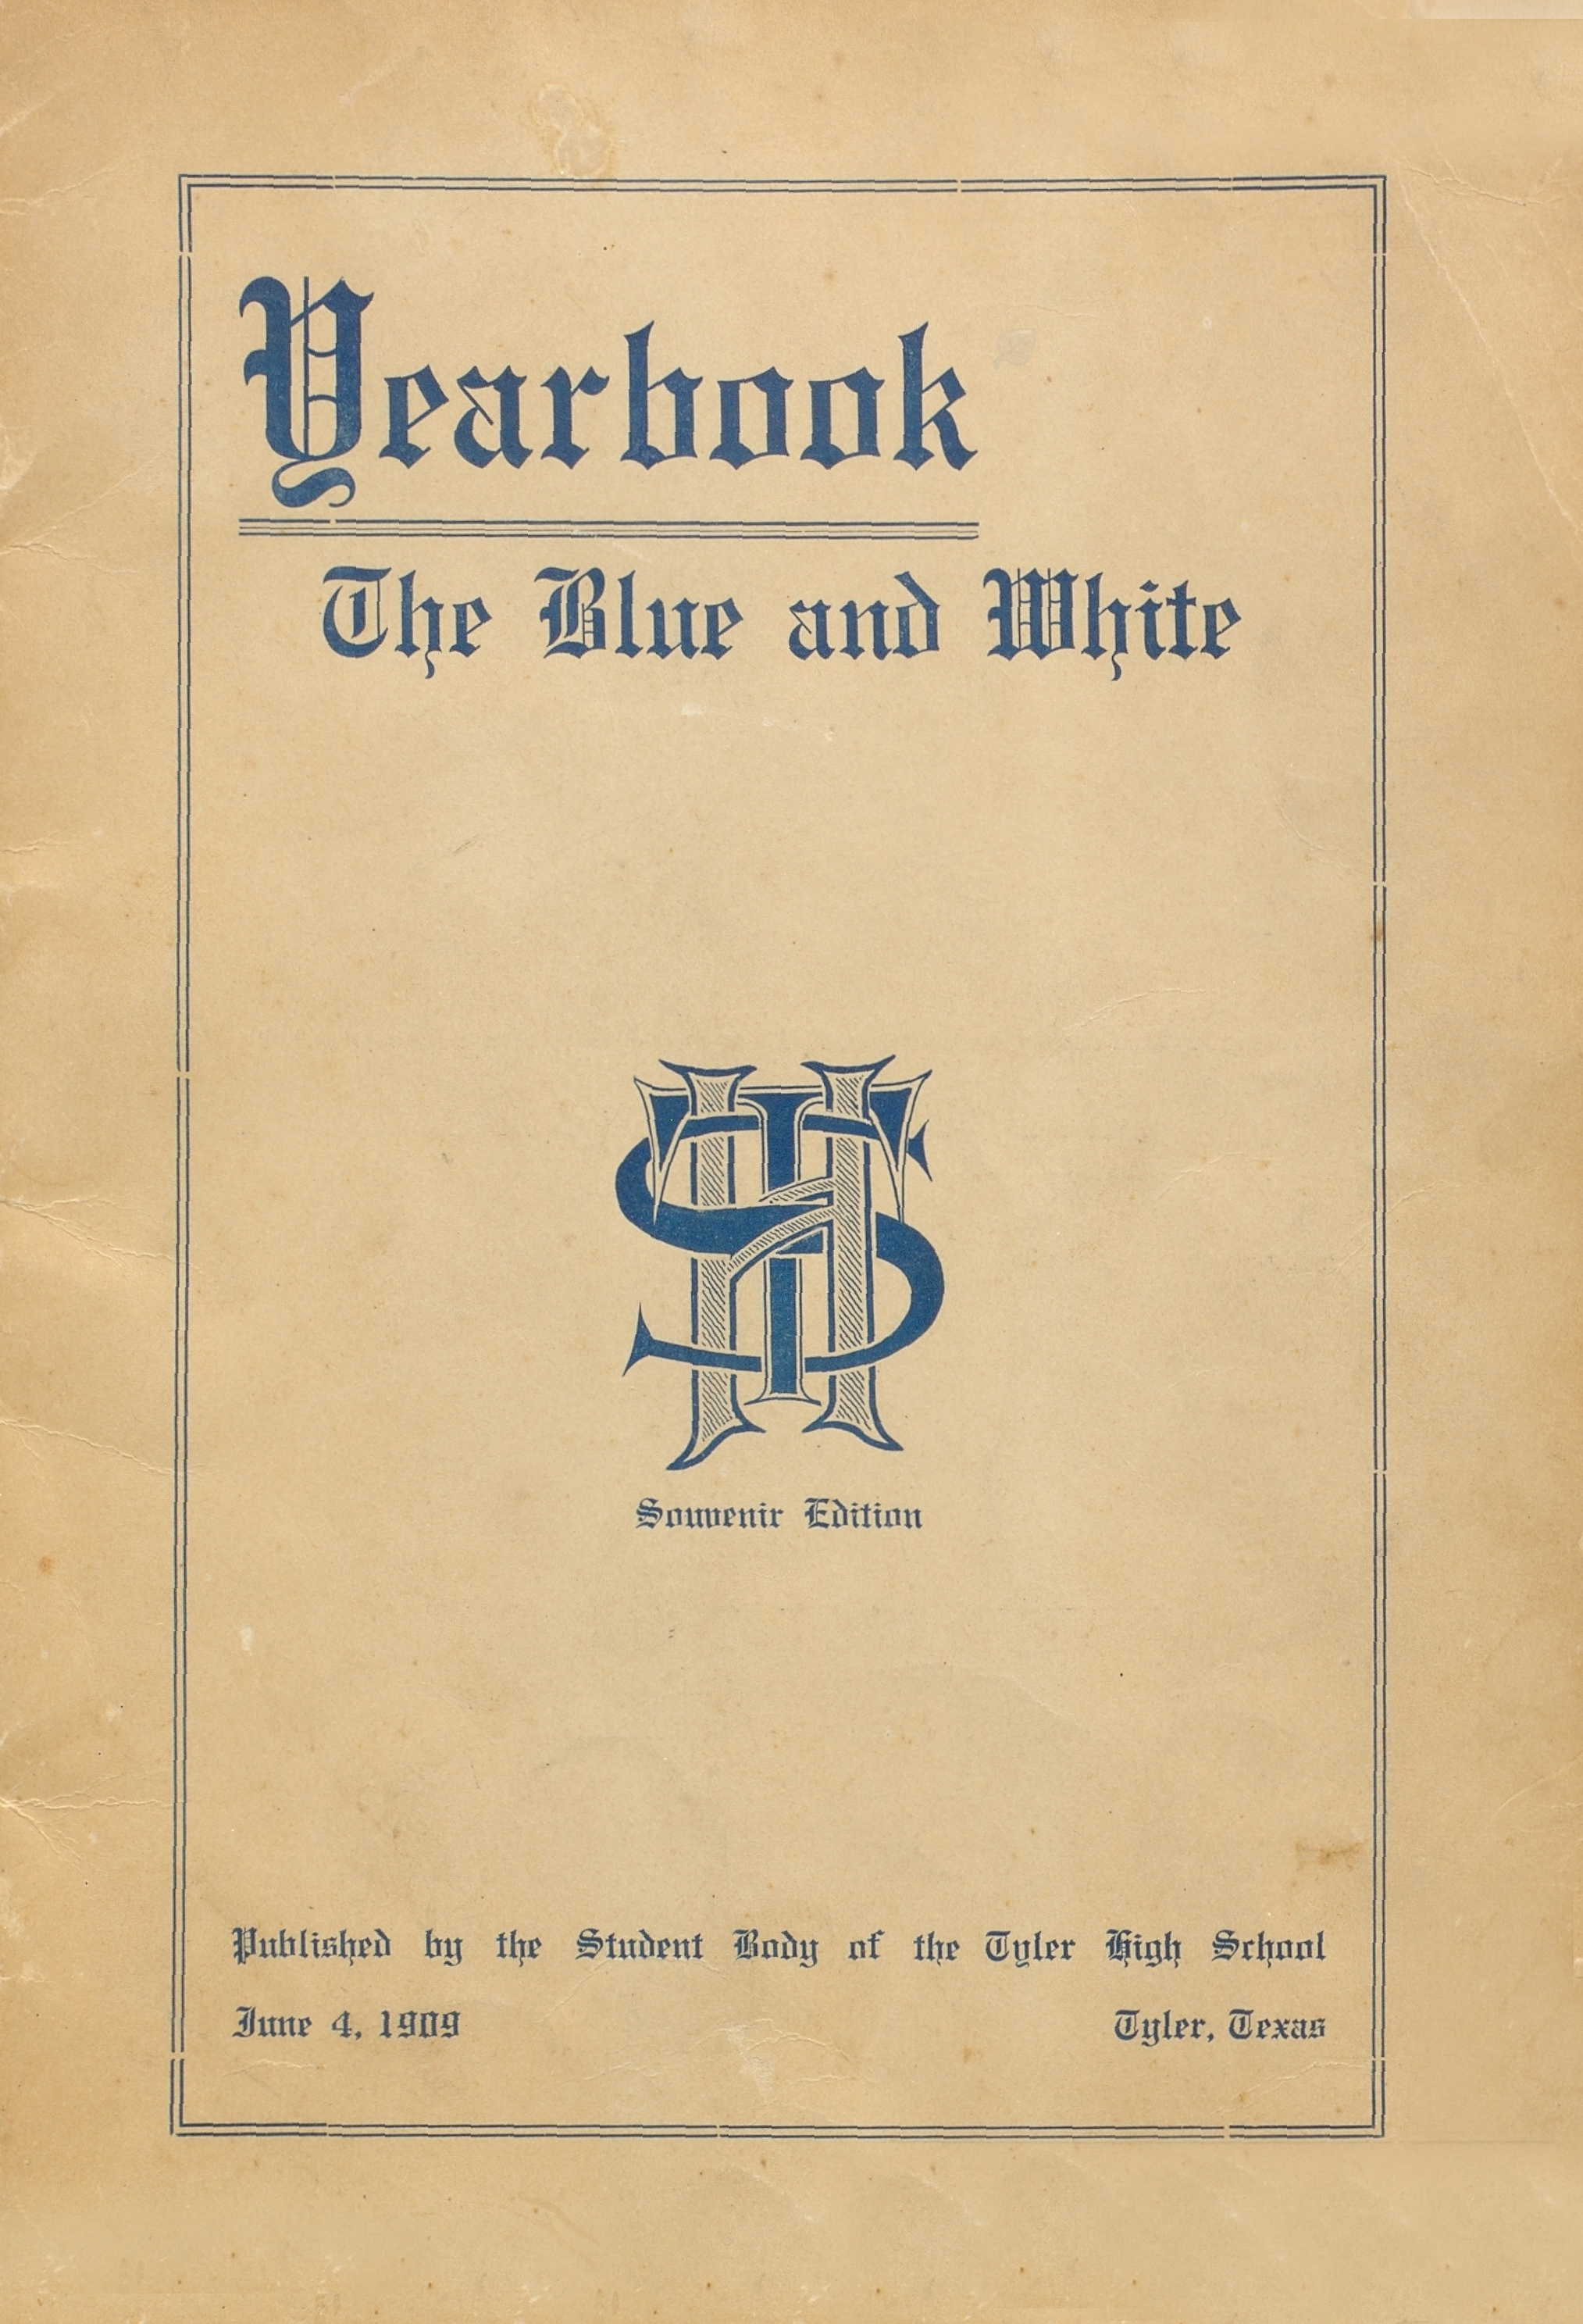 1909 Tyler High School Yearbook The Blue and White.